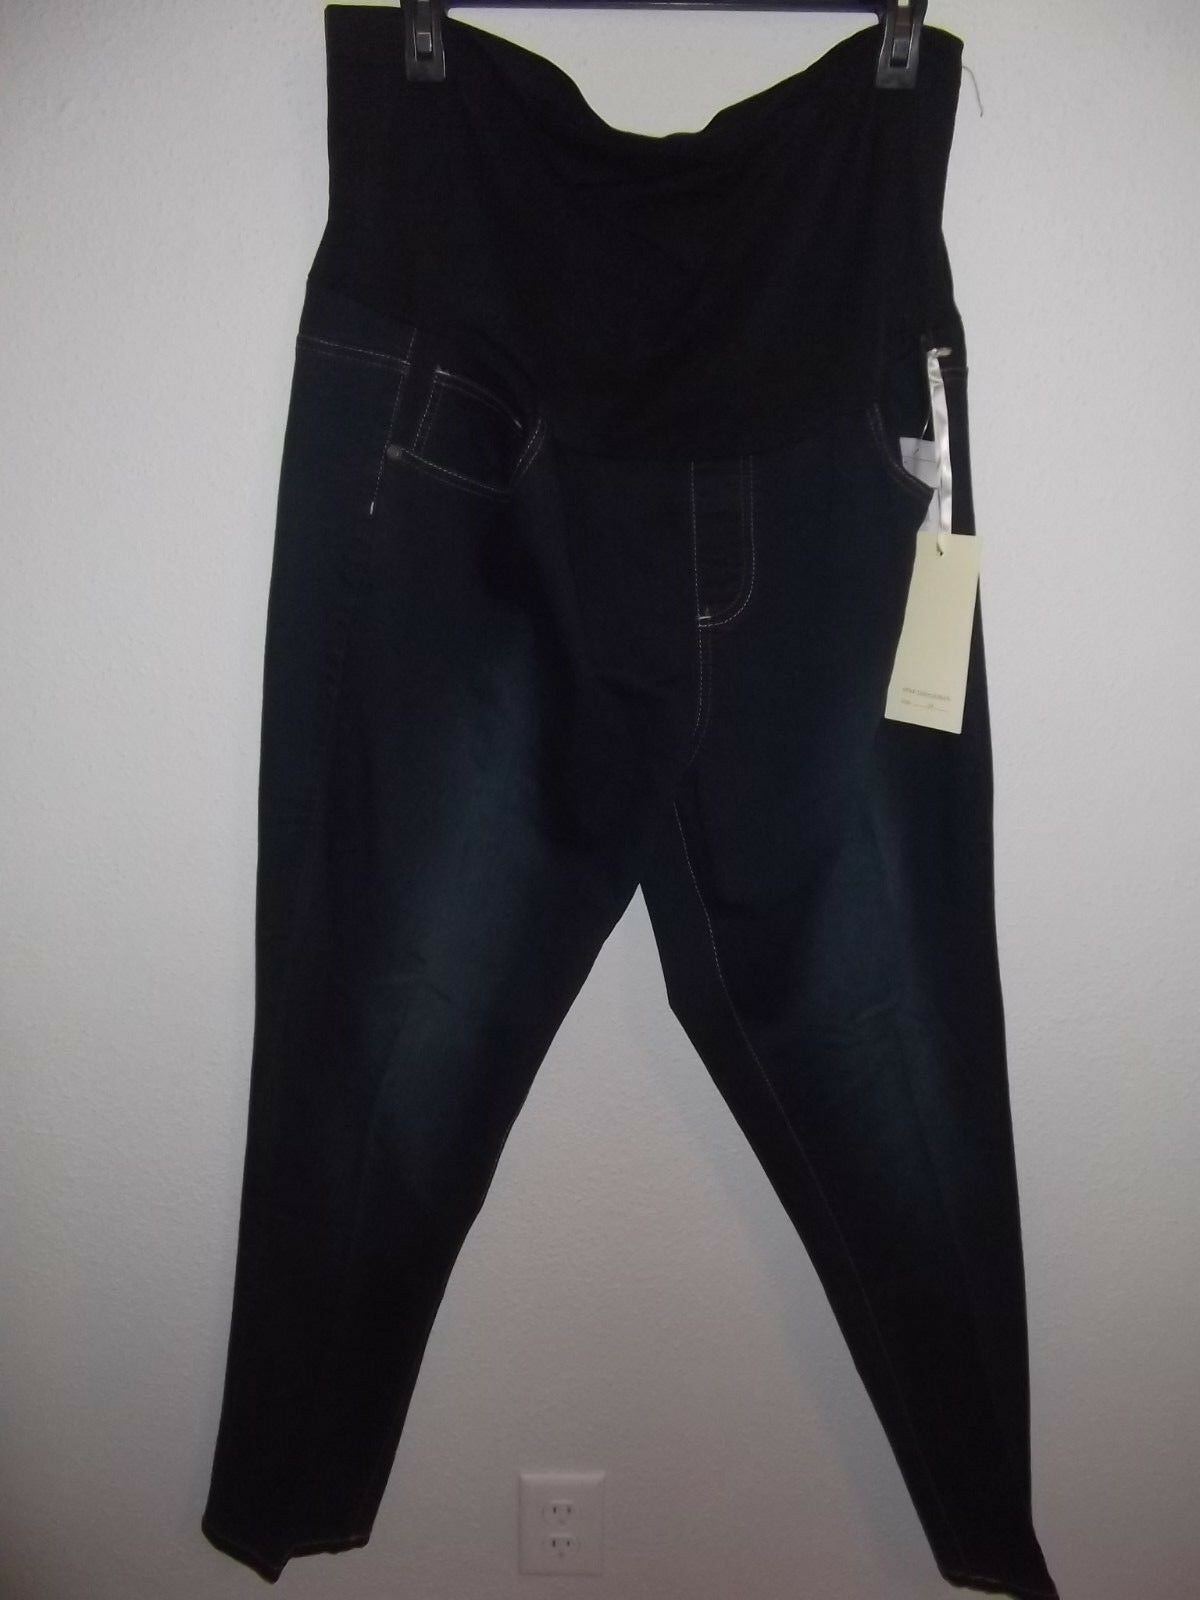 57f9fc077c5 TALA - WOMEN - MATERNITY JEANS - DARK BLUE - SIZE 2XL (DC-1-5x3) 1 of 3Only  3 available ...